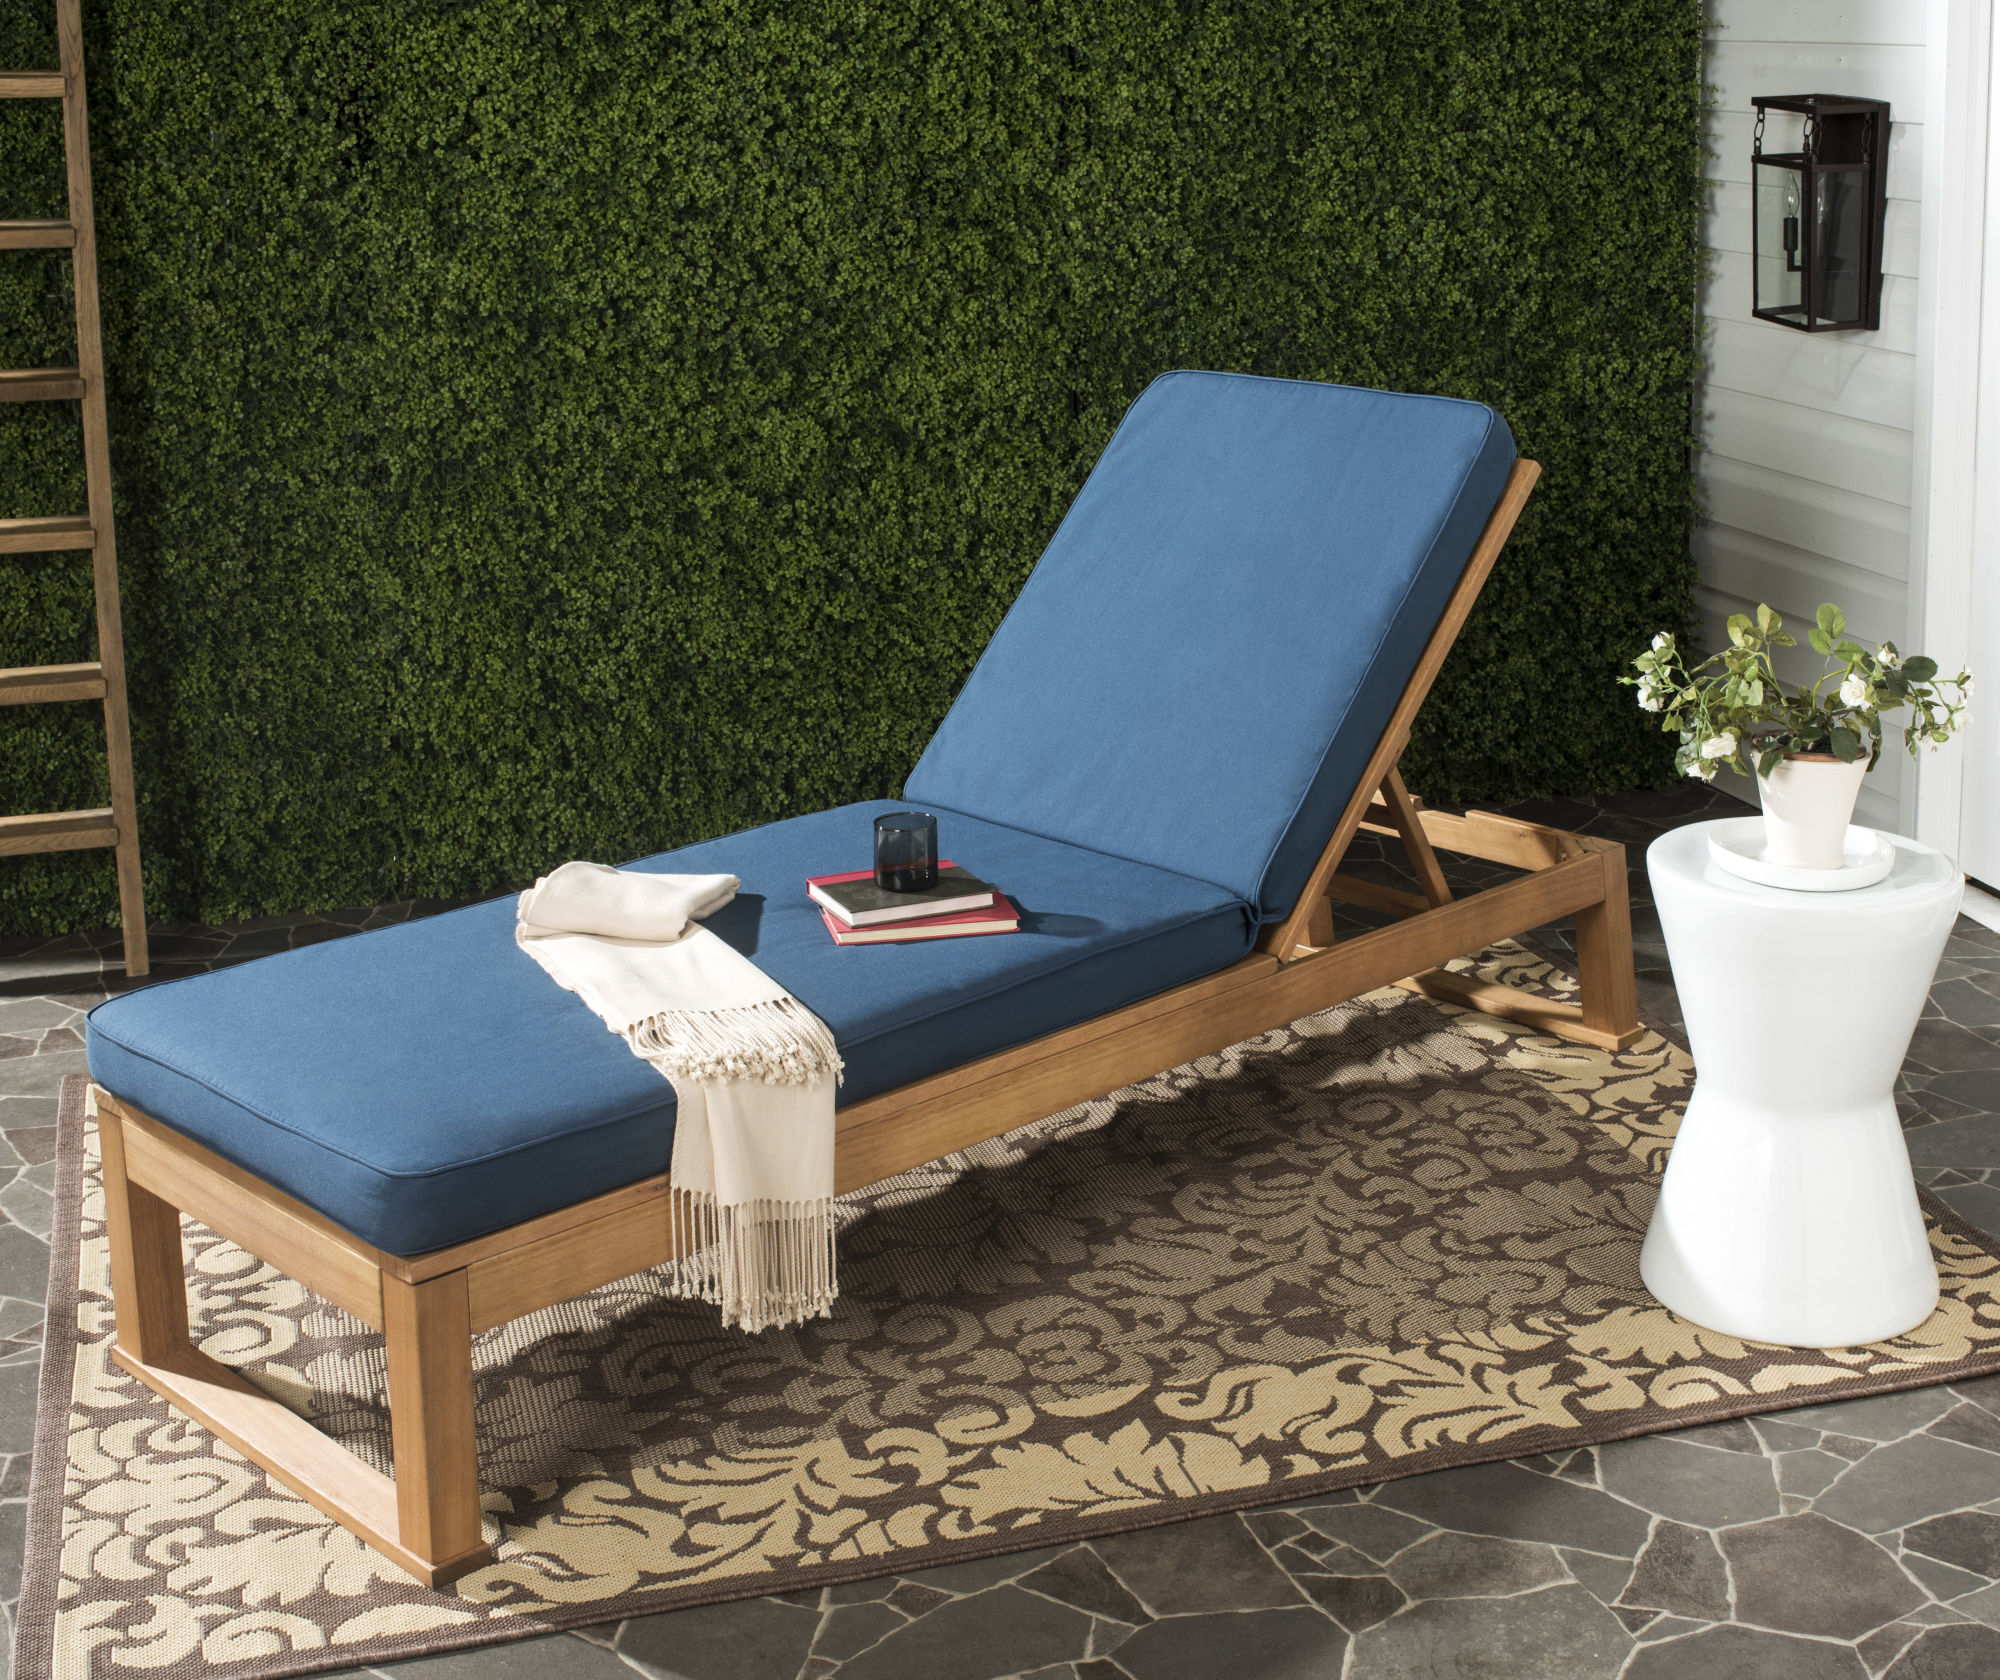 Solano Sunlounger on Safavieh Outdoor Living Solano Sunlounger id=69822